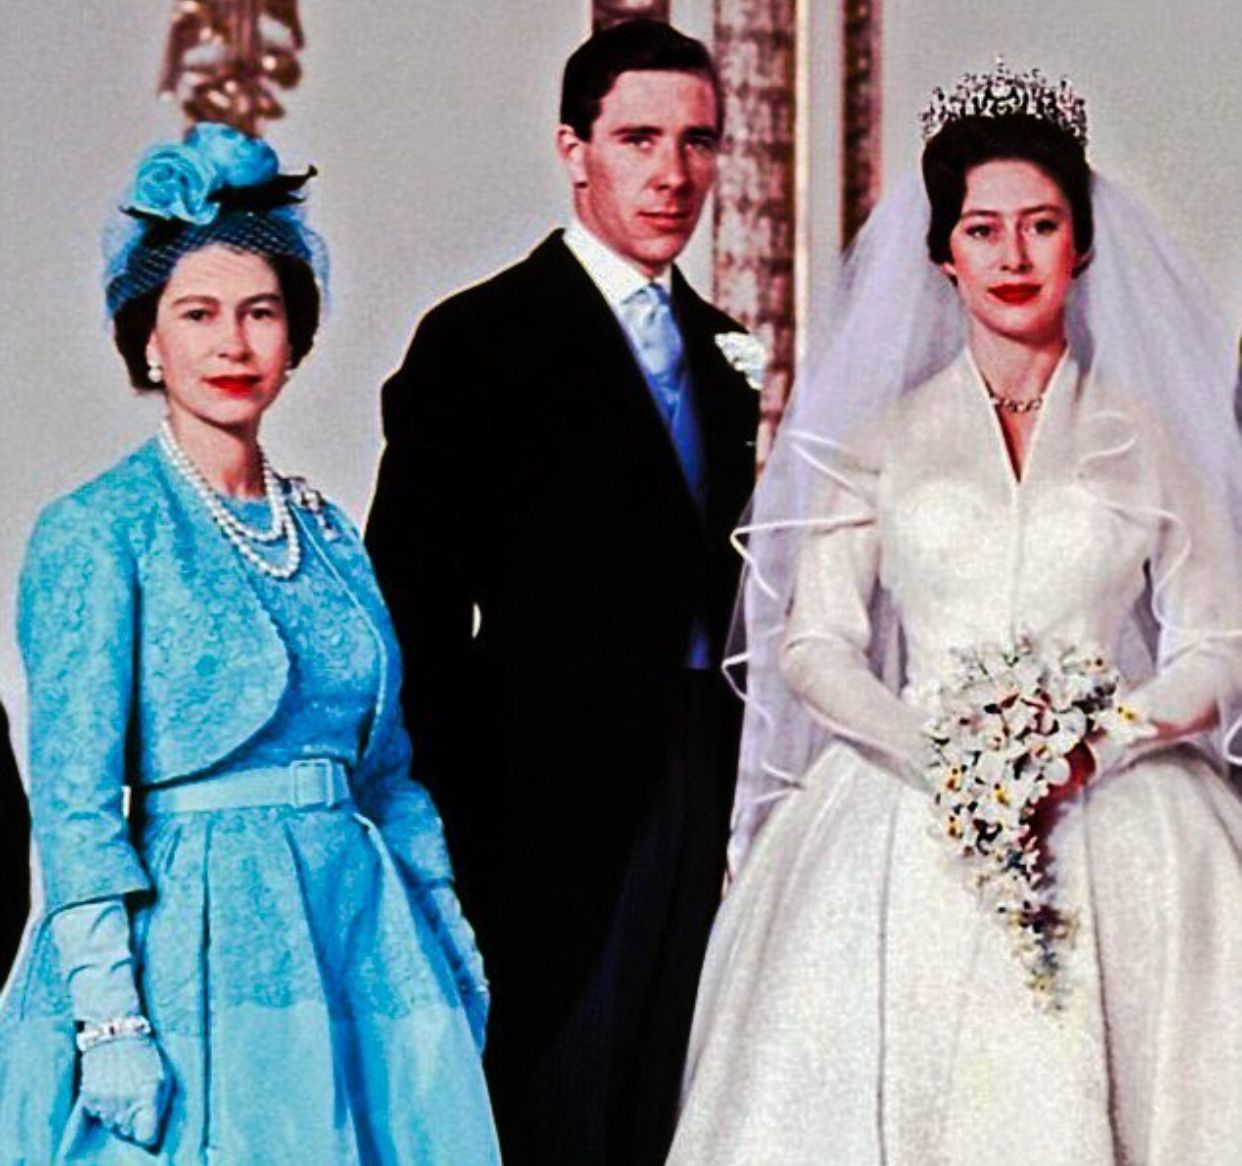 Princess Margaret Wedding.Pin By Suzanne Campbell On English Royals In 2019 Princess